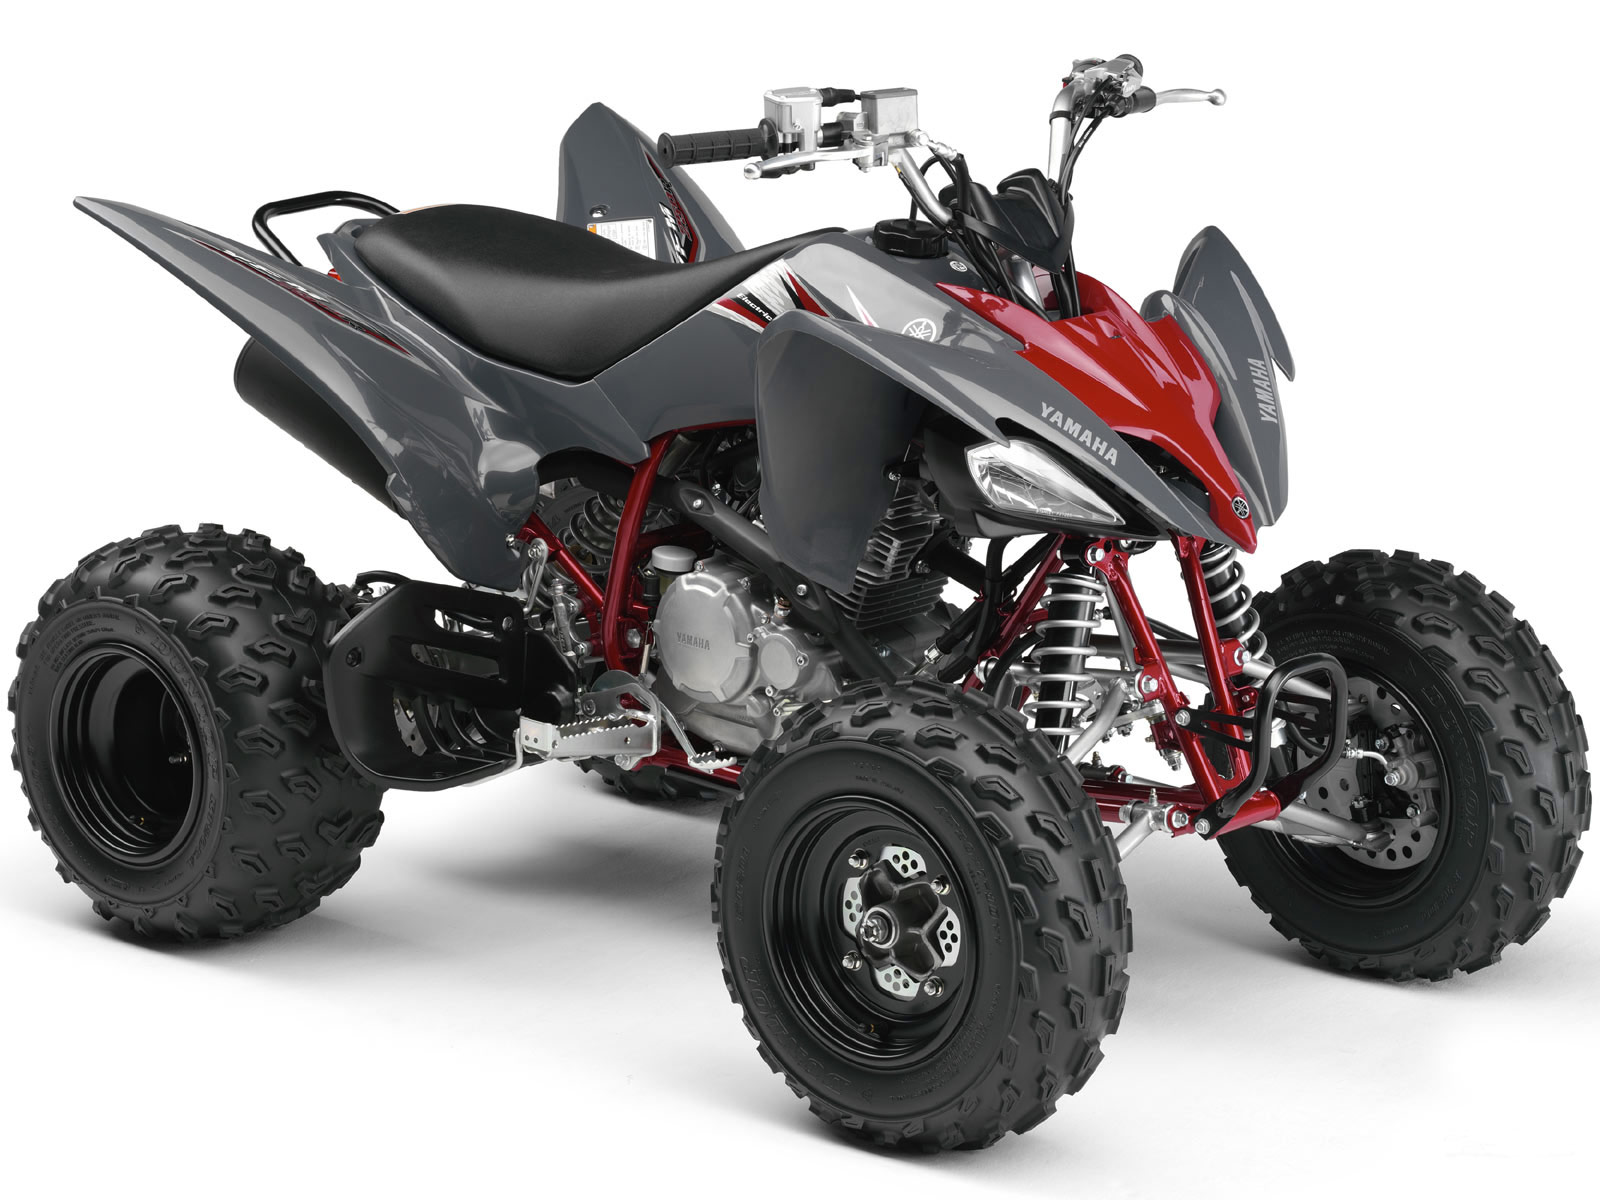 2008 yamaha yfm 250 raptor atv pictures specifications. Black Bedroom Furniture Sets. Home Design Ideas